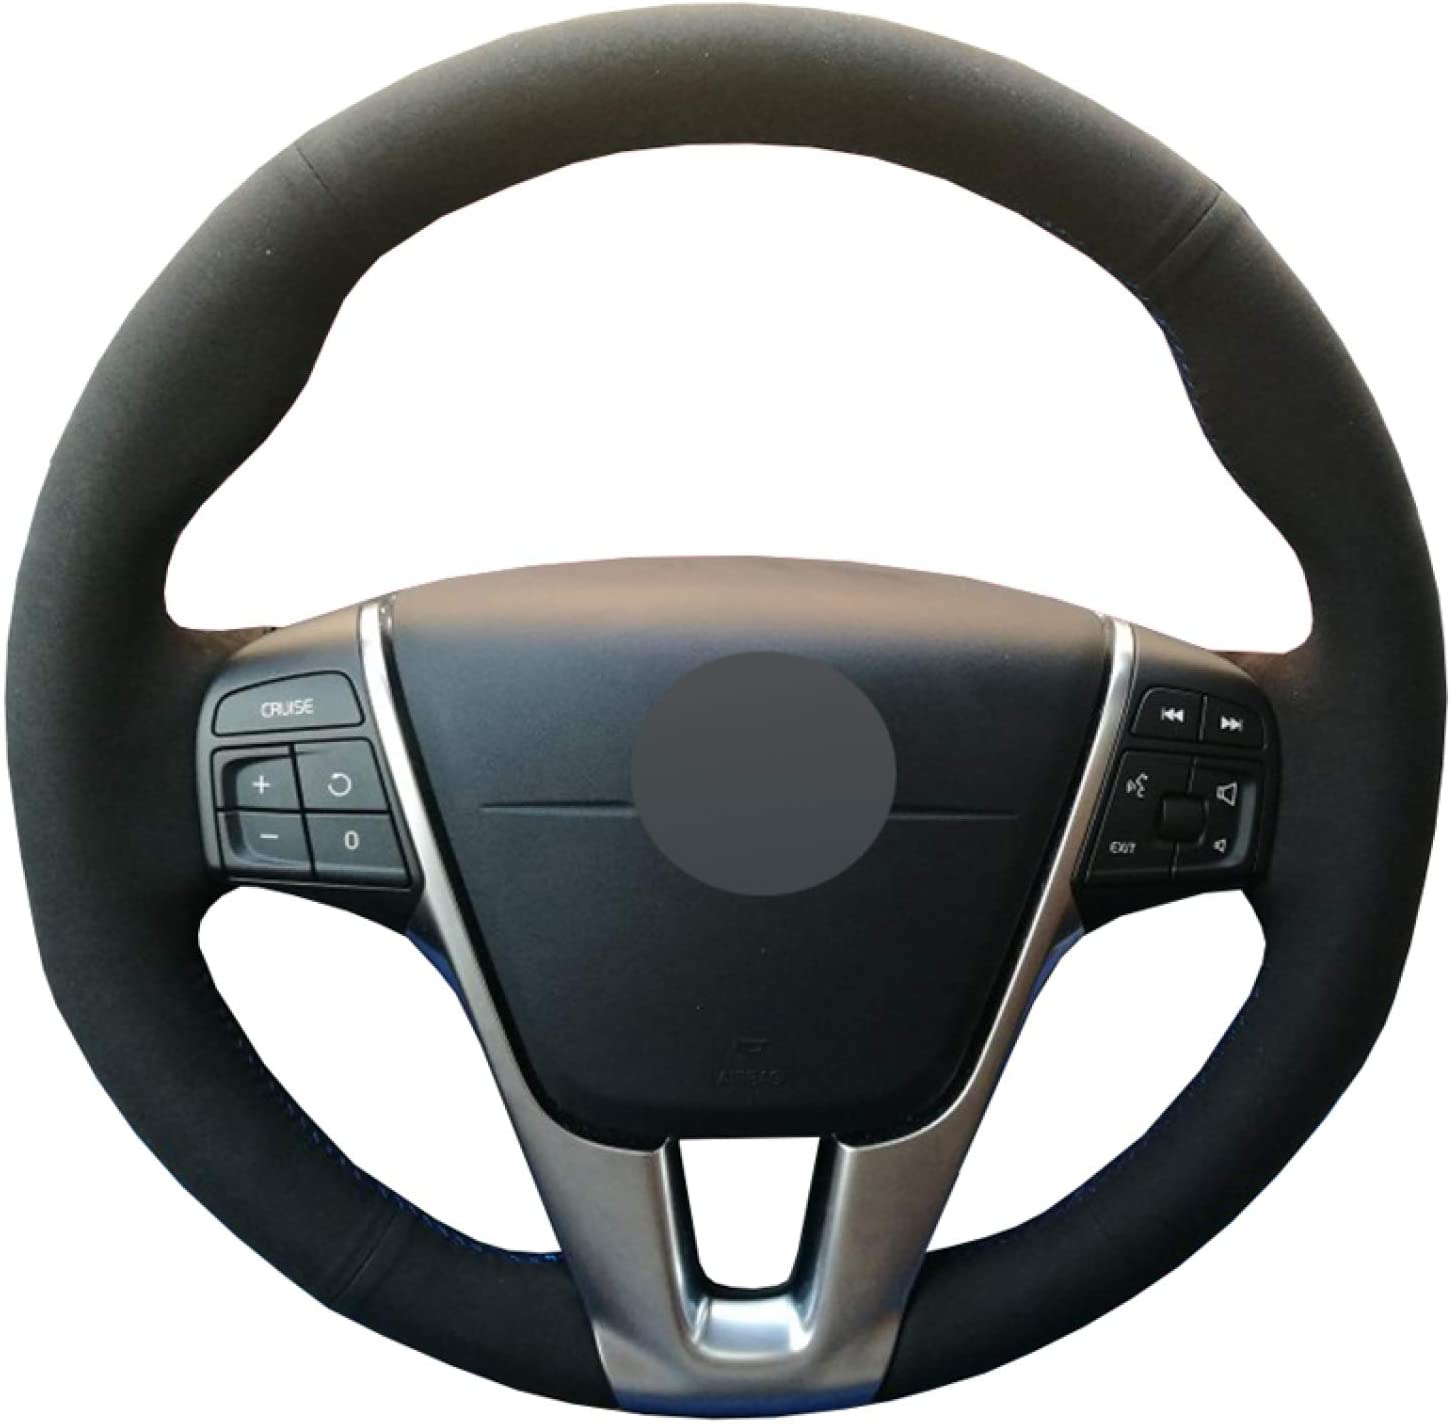 YSGADH Some reservation Very popular! DIY Car Steering Wheel Cover 2012-201 S80 S80L Volvo for